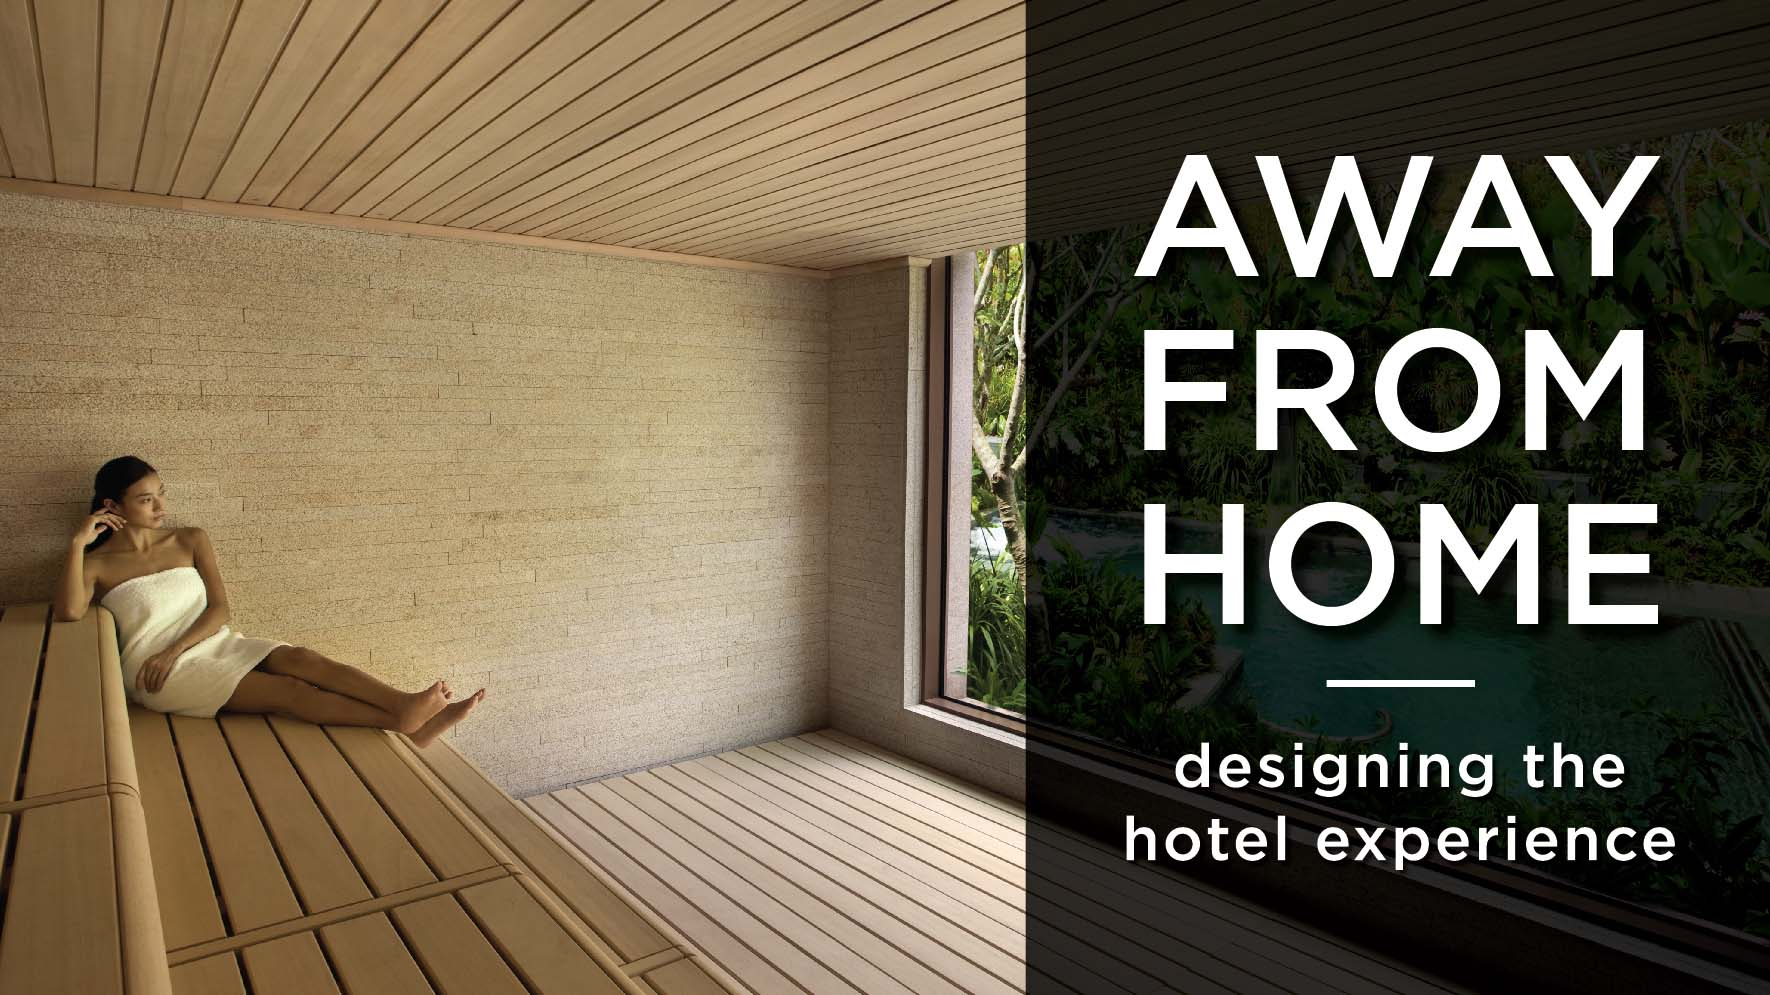 Away From Home Designing The Hotel Experience Michael Graves Architecture Design